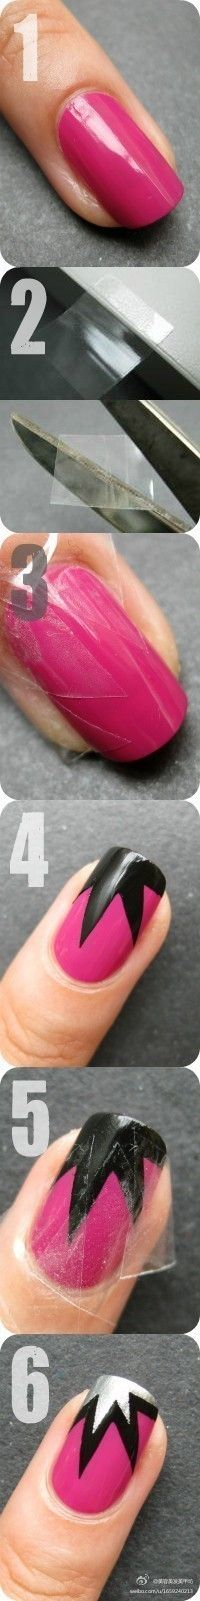 Add designs to your nails with scotch tape